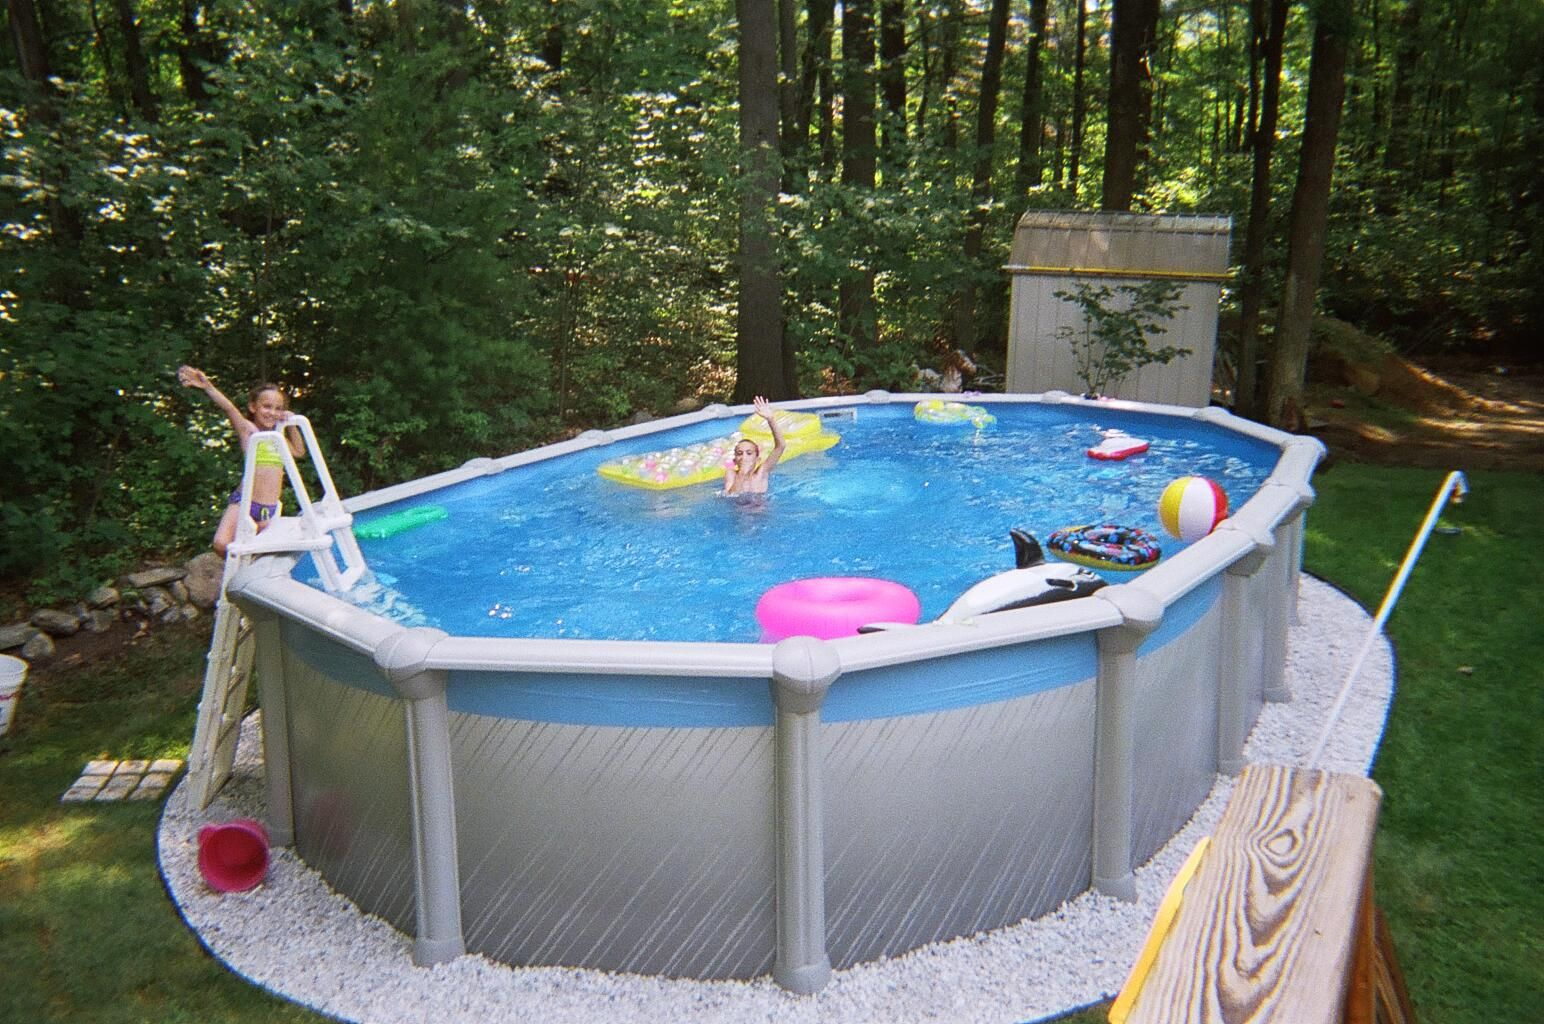 Small Oval Fiberglass Above Ground Pools For Kids In Small